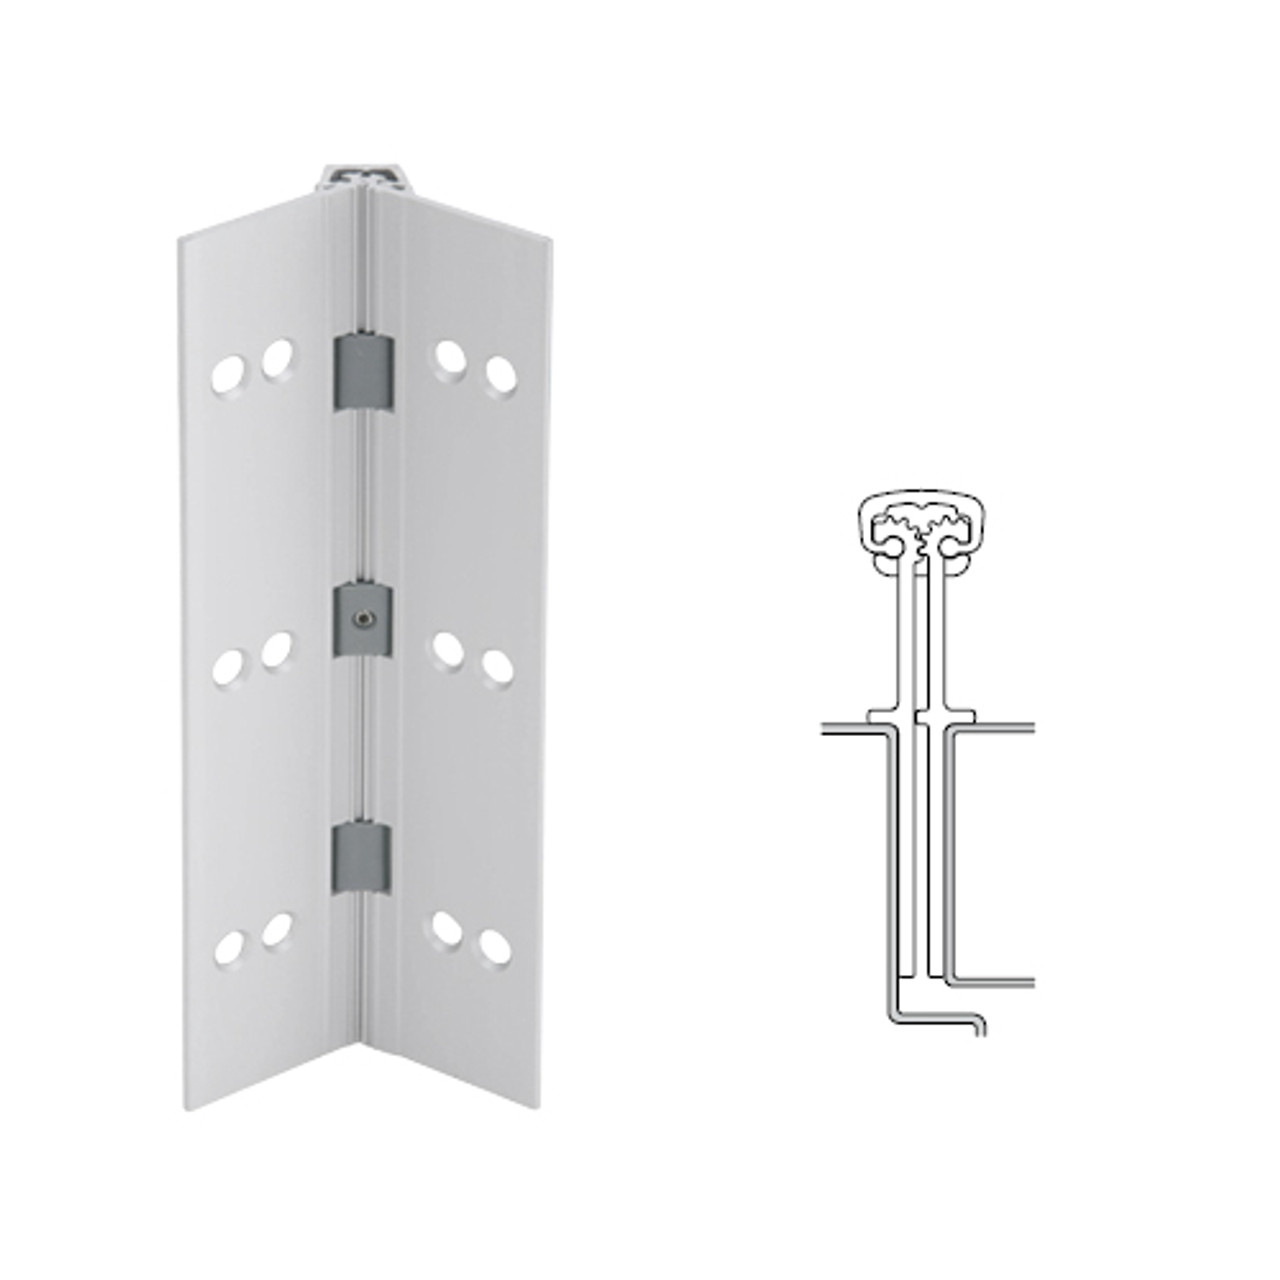 040XY-US28-85-HT IVES Full Mortise Continuous Geared Hinges with Hospital Tip in Satin Aluminum